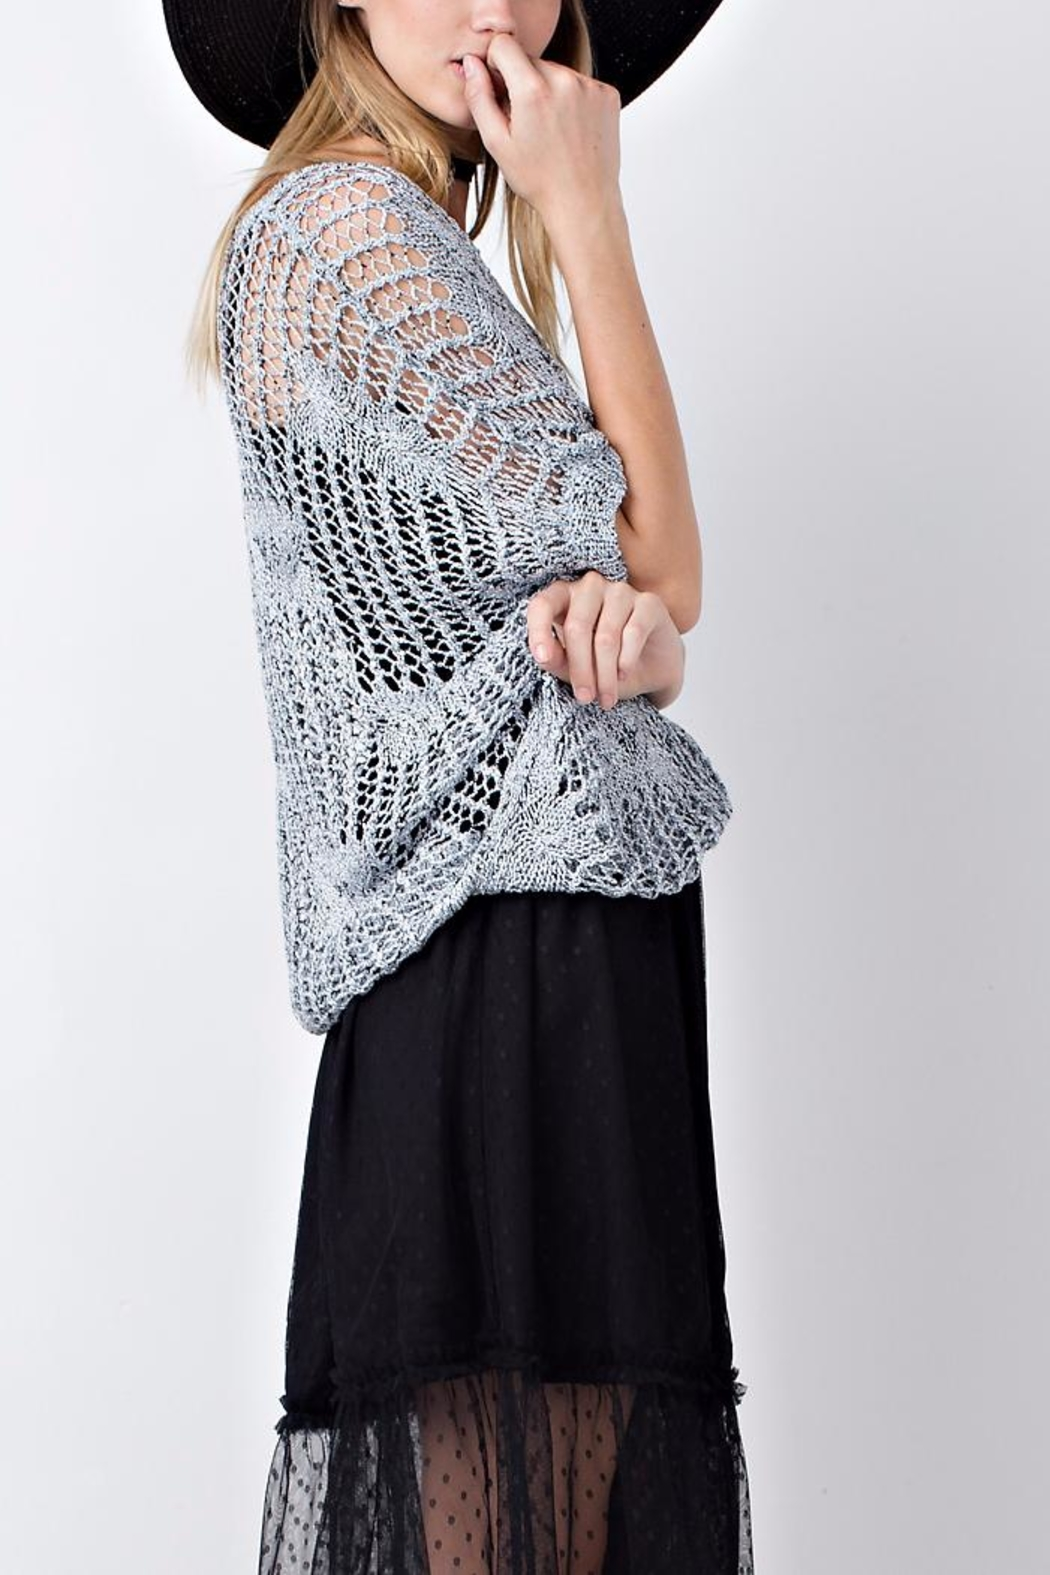 People Outfitter Sweater Crochet Top - Side Cropped Image